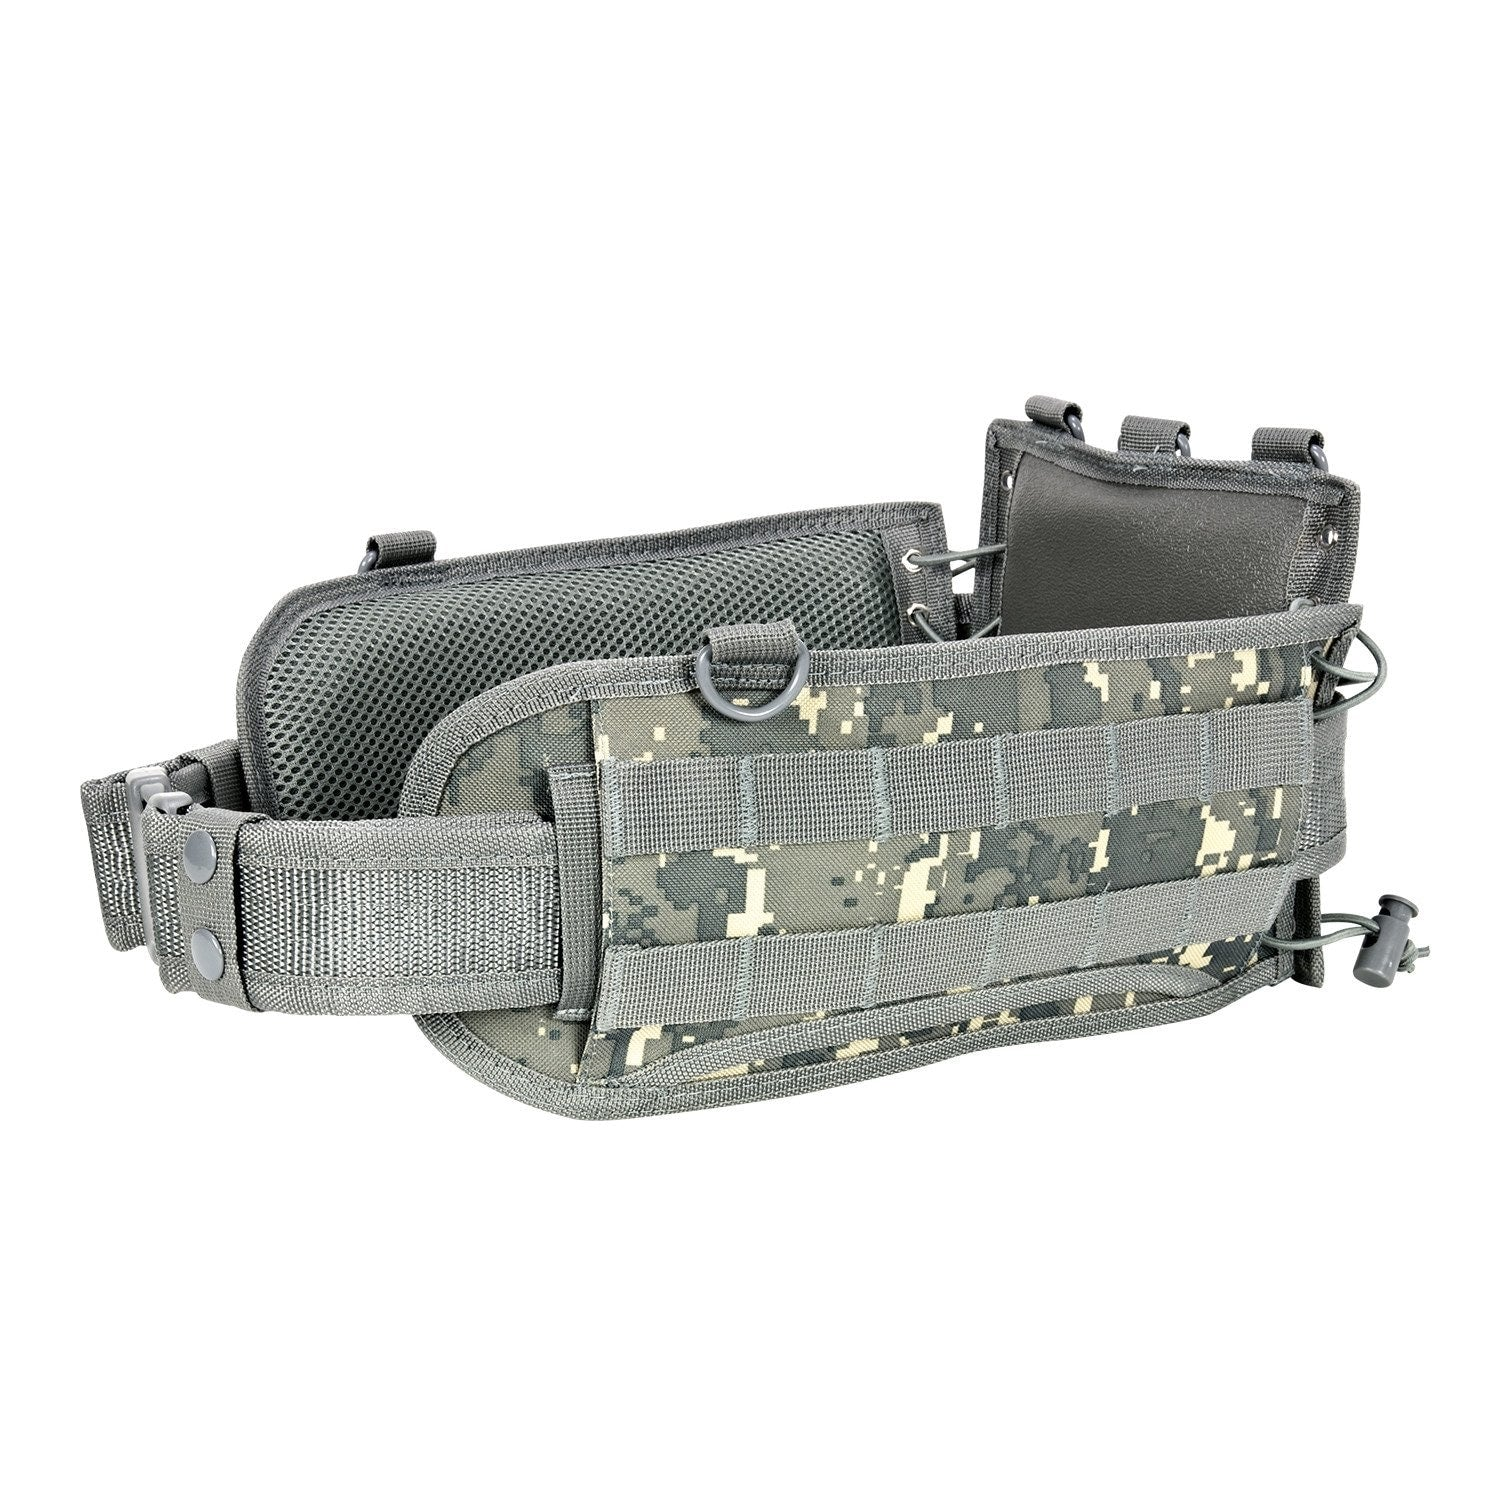 Battle Belt With Pistol Belt - Digital Camo - Molle Pouches And Accessories - Vism - Colonel Mustard